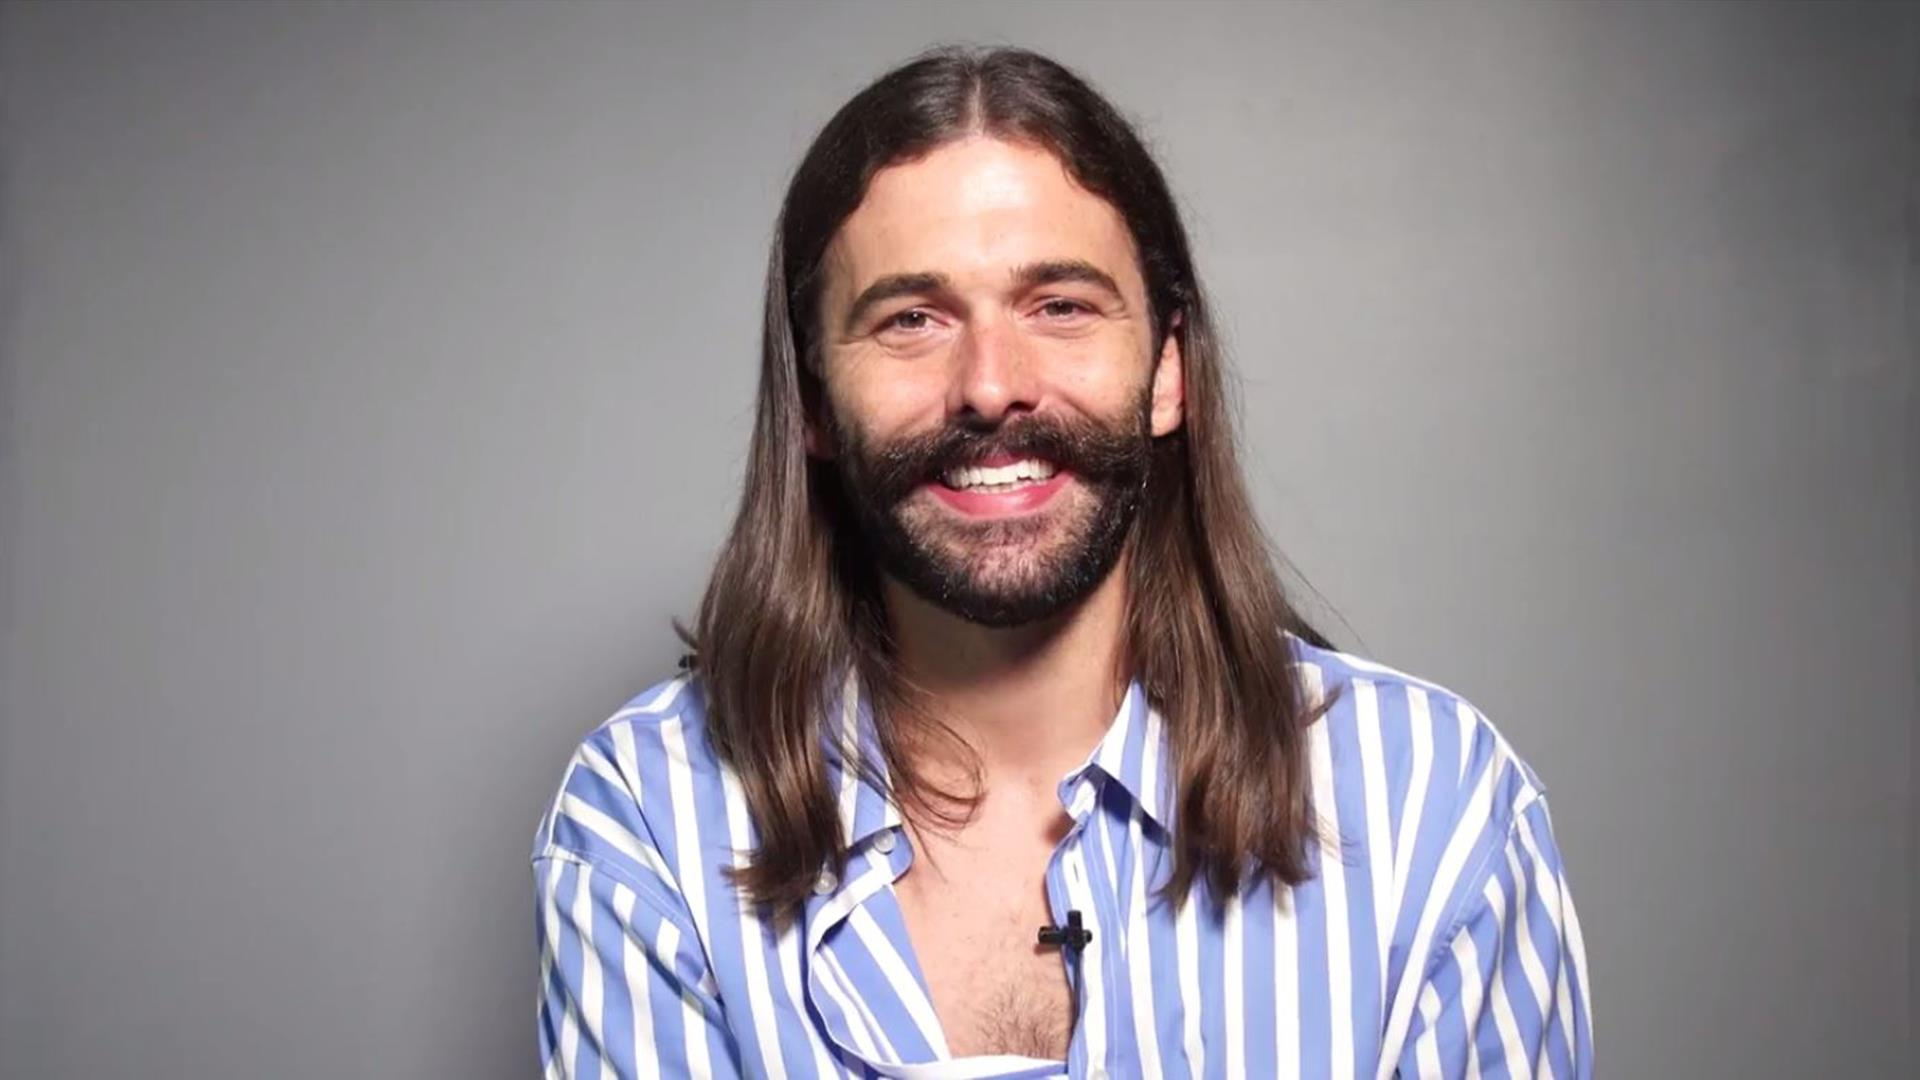 'Queer Eye' star Jonathan Van Ness has 1 piece of advice for his younger self